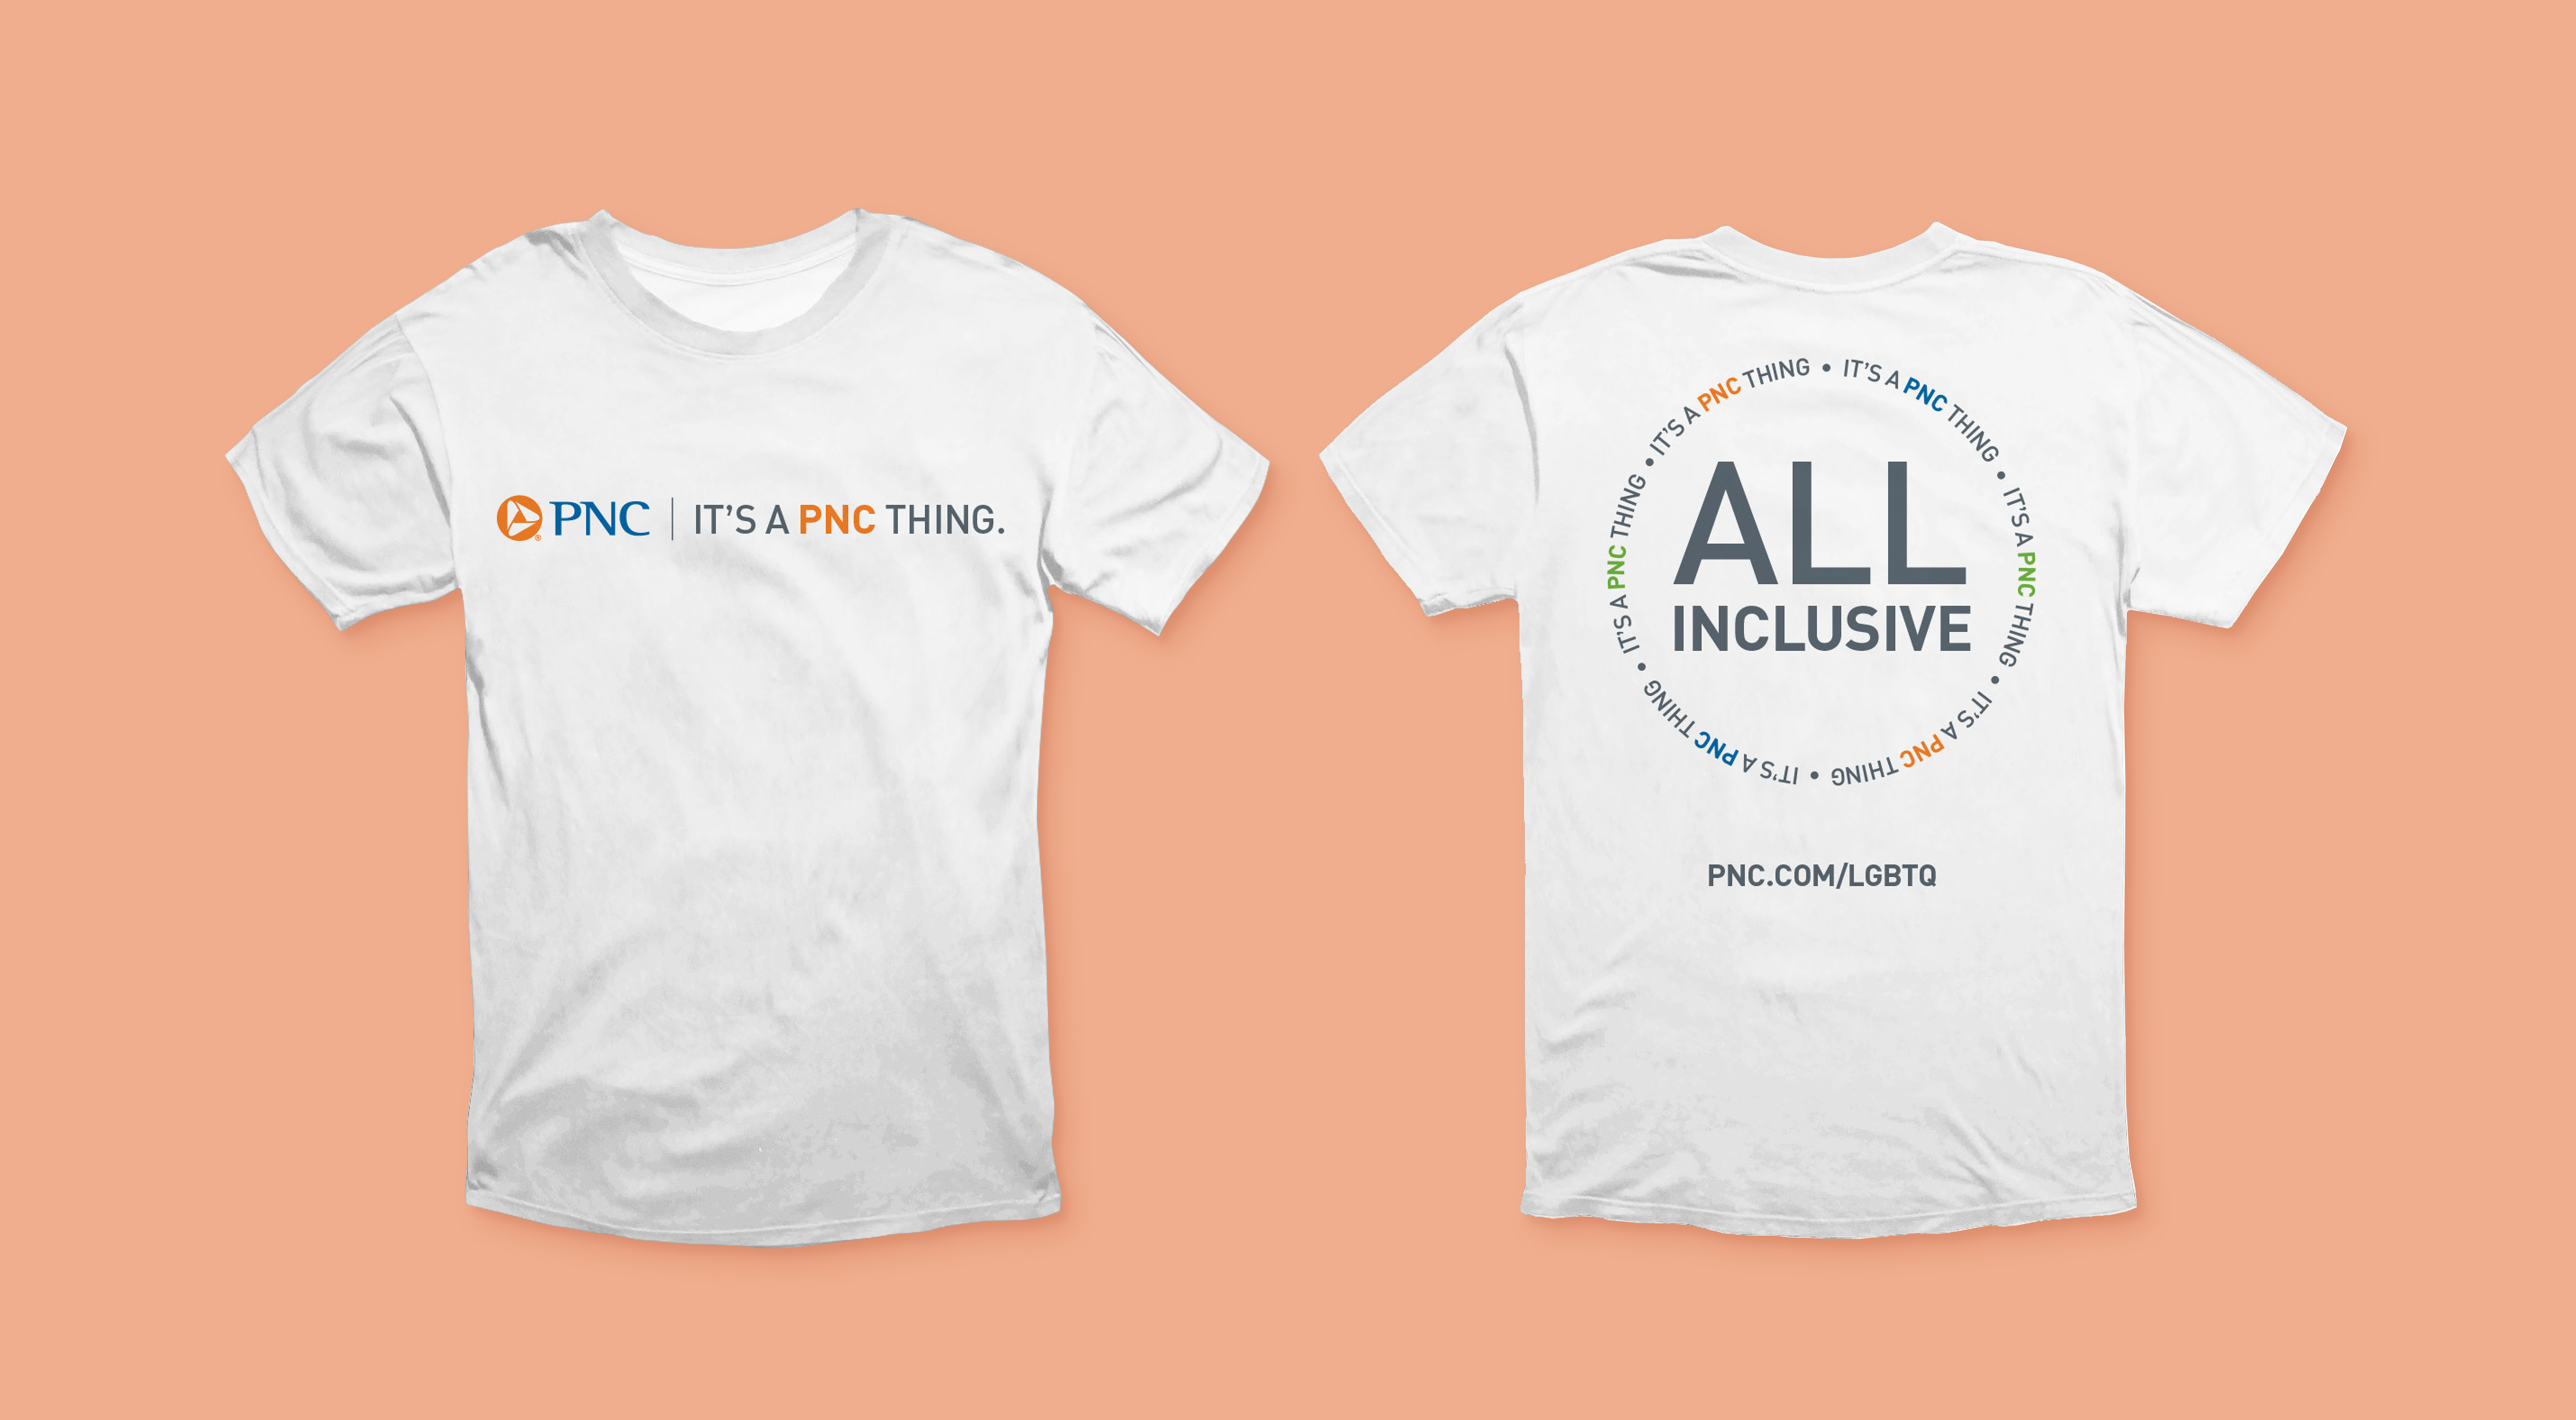 """A mockup of the front and back of a white t-shirt over a salmon-colored background. The front features the PNC logo and text reading """"It's a PNC thing."""" The back features large gray text reading """"All inclusive"""" surrounded by many colorful iterations of """"It's a PNC thing"""" in a circle around it. Below this is a URL reading """"pnc.com/LGBTQ."""""""